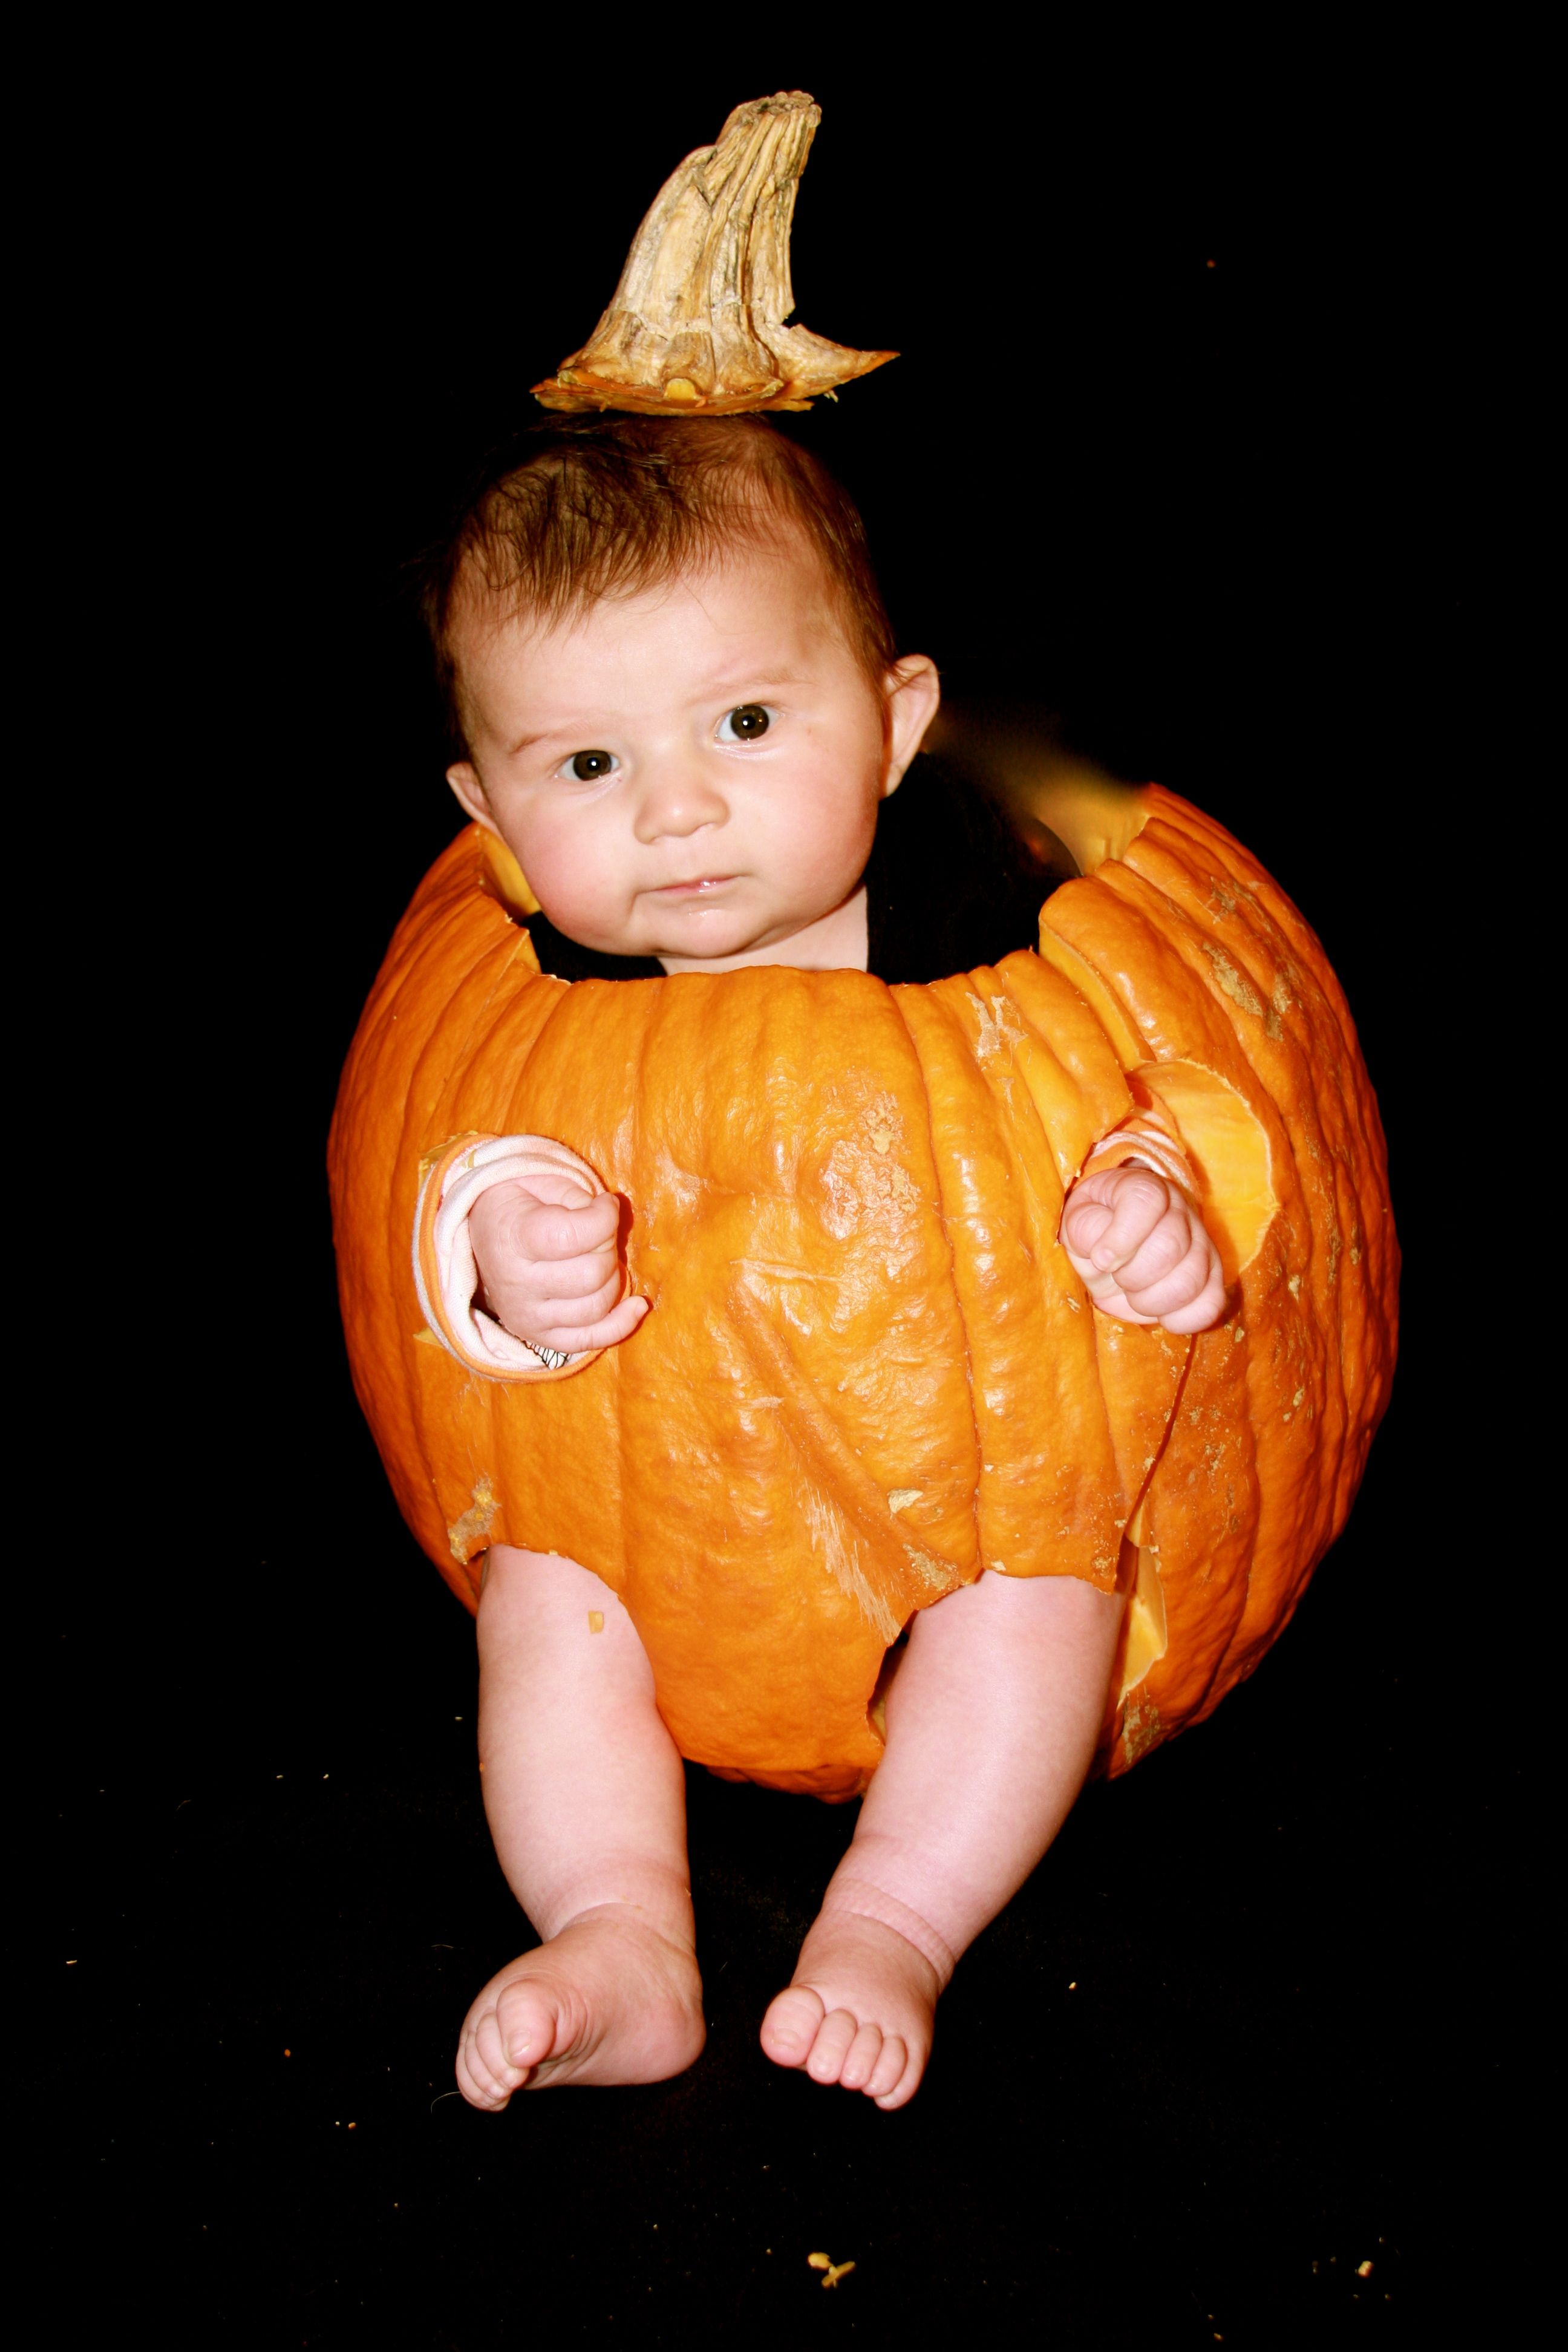 Cut front of pumpkin out to slide baby in photo Pinterest